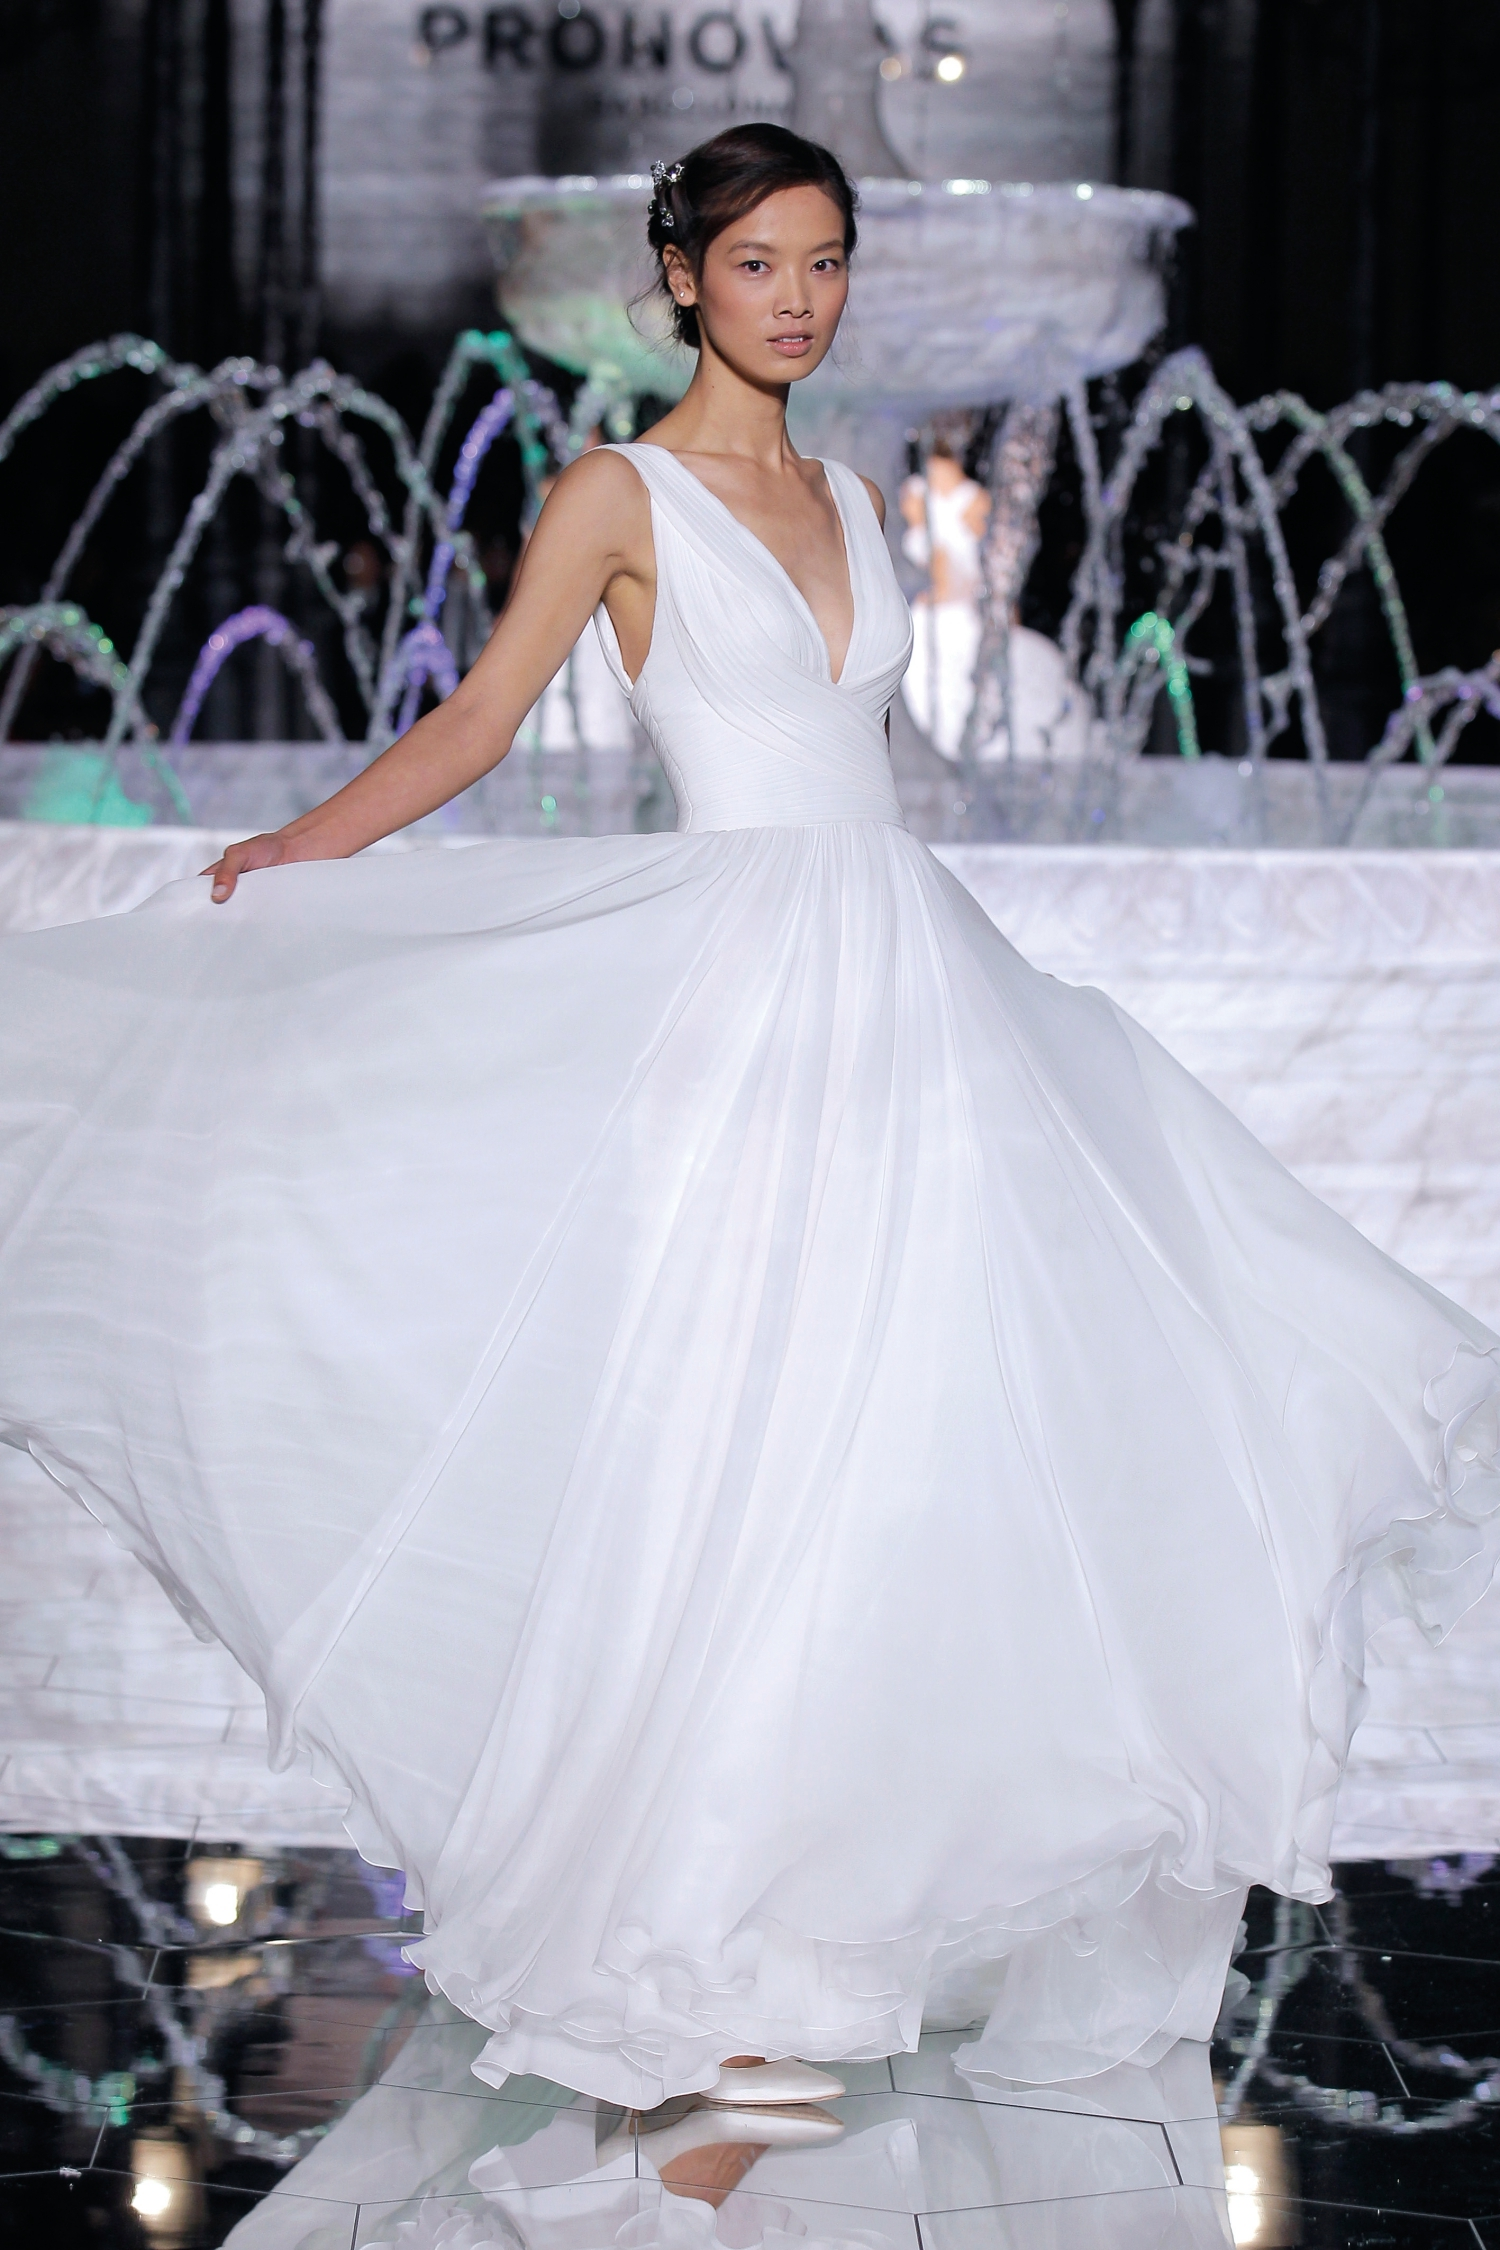 1-PRONOVIAS FASHION SHOW_Reinado